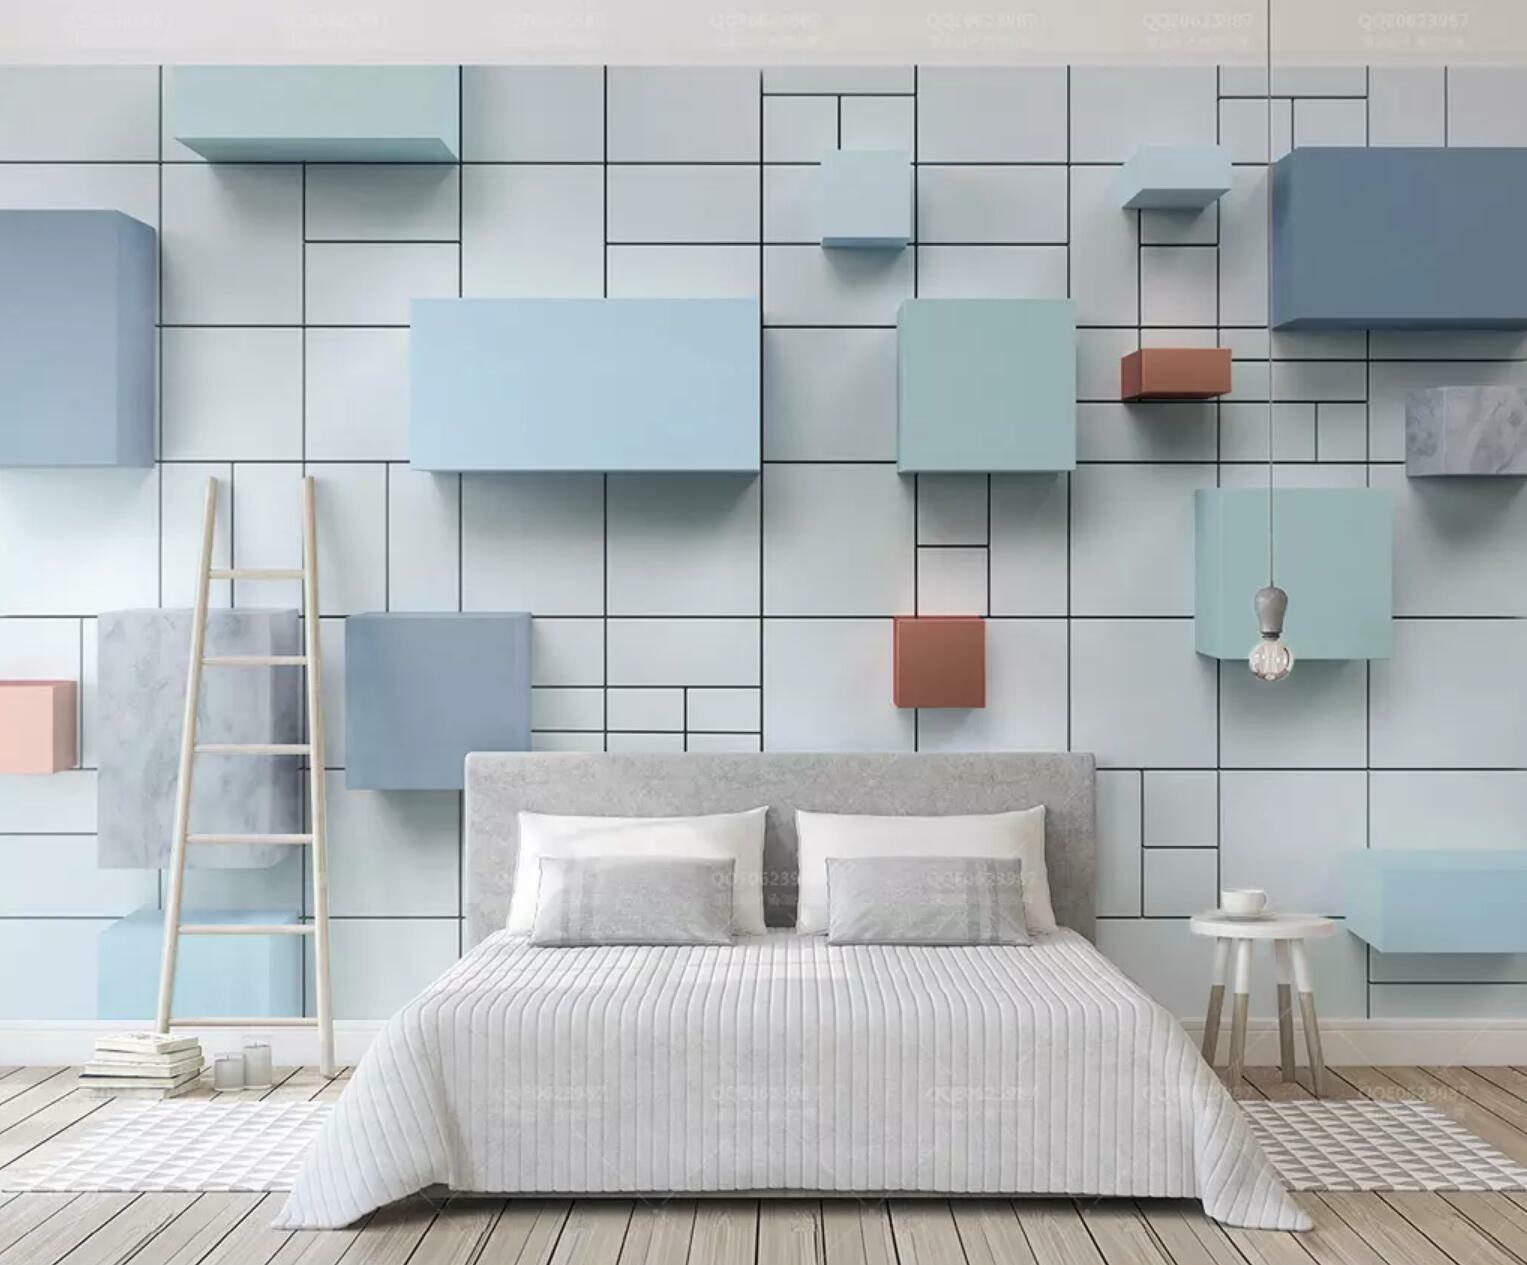 3D Blau Square 389 Wall Wall Wall Paper Exclusive MXY Wallpaper Mural Decal Indoor wall 7e4b17